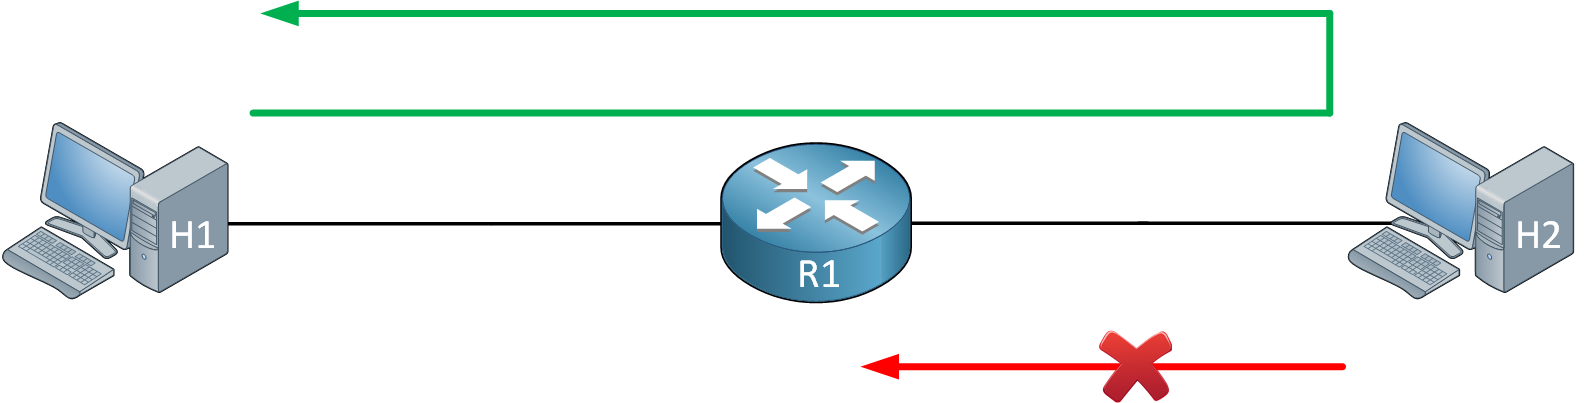 H1 H2 R1 Acl Established Topology